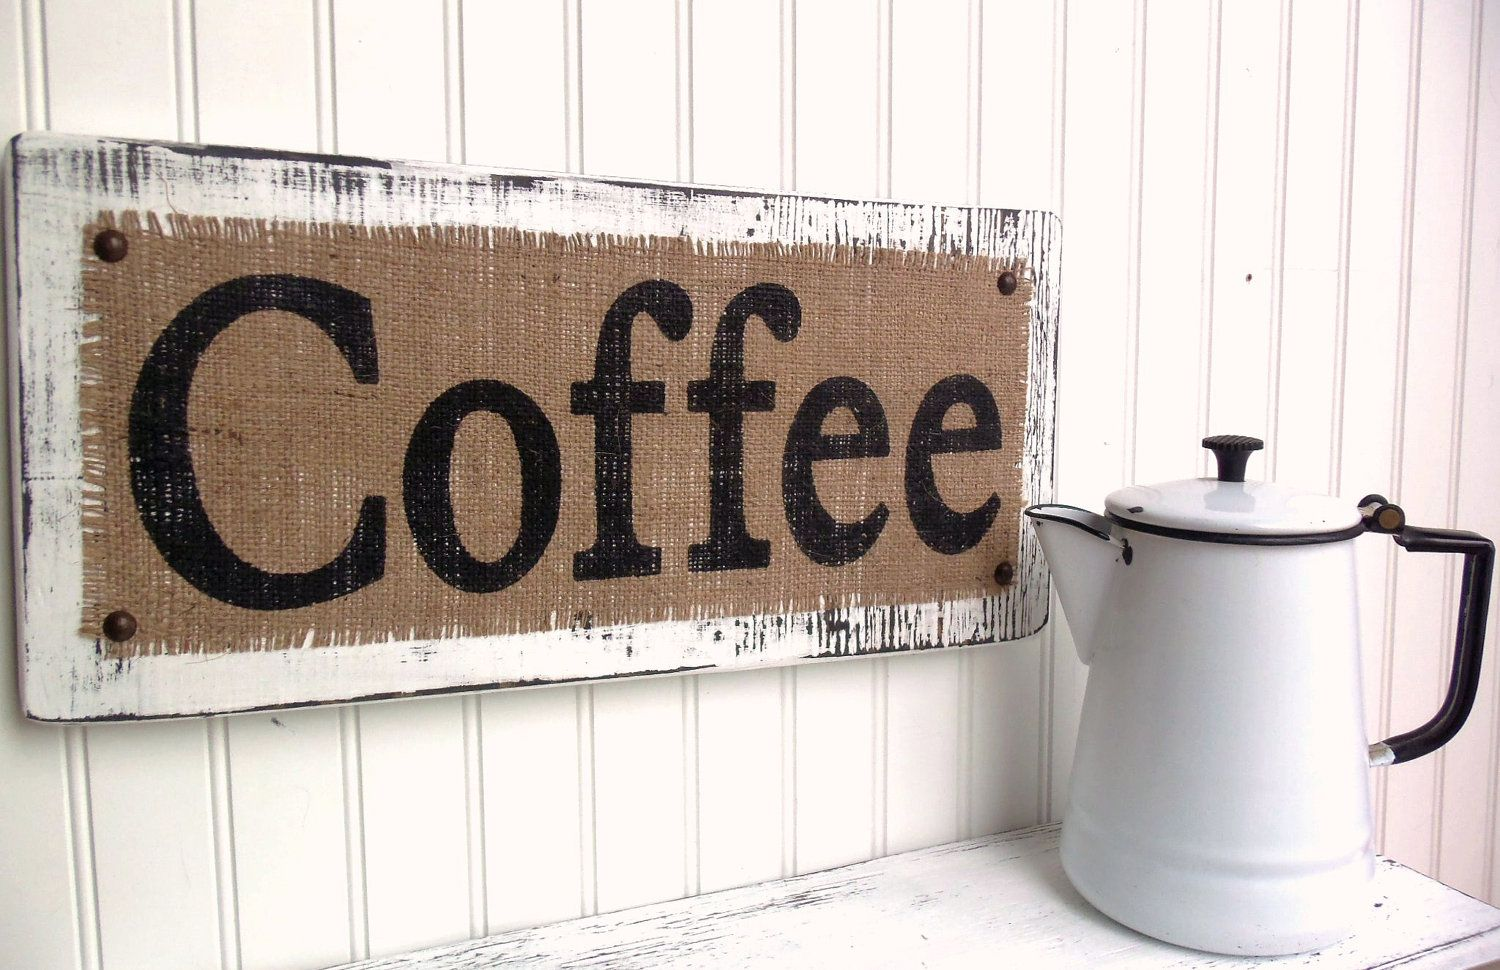 Coffee Burlap Distressed Kitchen Sign  Craft Ideas. Cool Room Lights. Decorative Wall Alphabet Letters. Cheap Outdoor Wedding Decorations. How To Build A Room Addition Yourself. Hotels With Jacuzzi In Room In Boston. White Laundry Room Cabinets. Decorative Stones For Vases. Decorative Wooden Chest